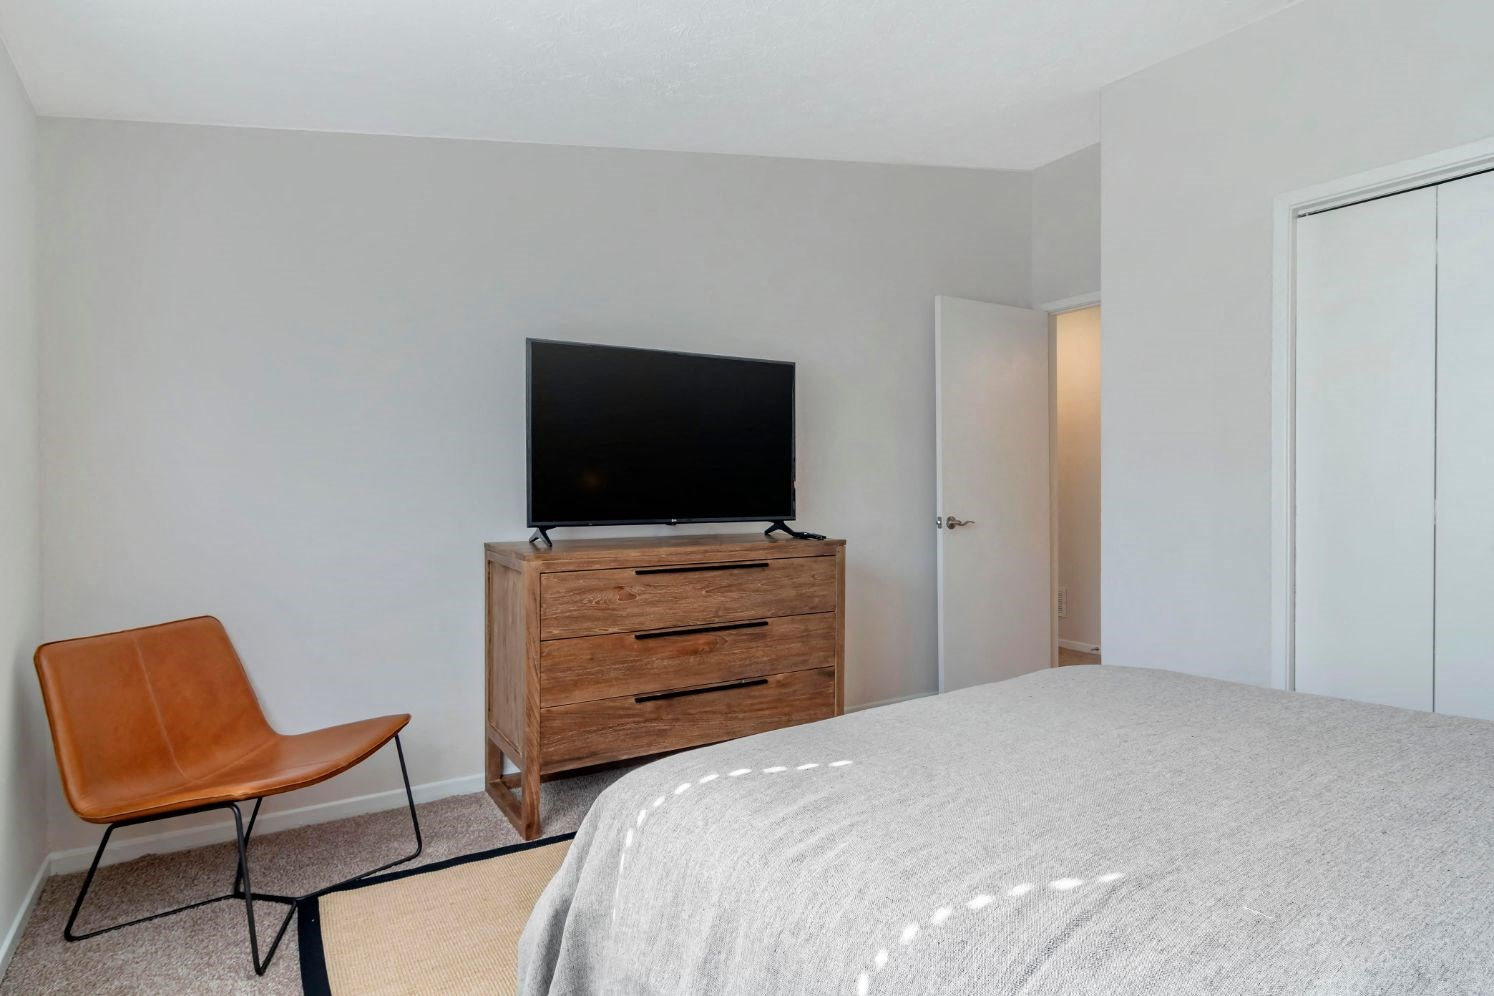 Fully Furnished Model Bedroom with Bed Dresser and TV Next Contemporary Chair